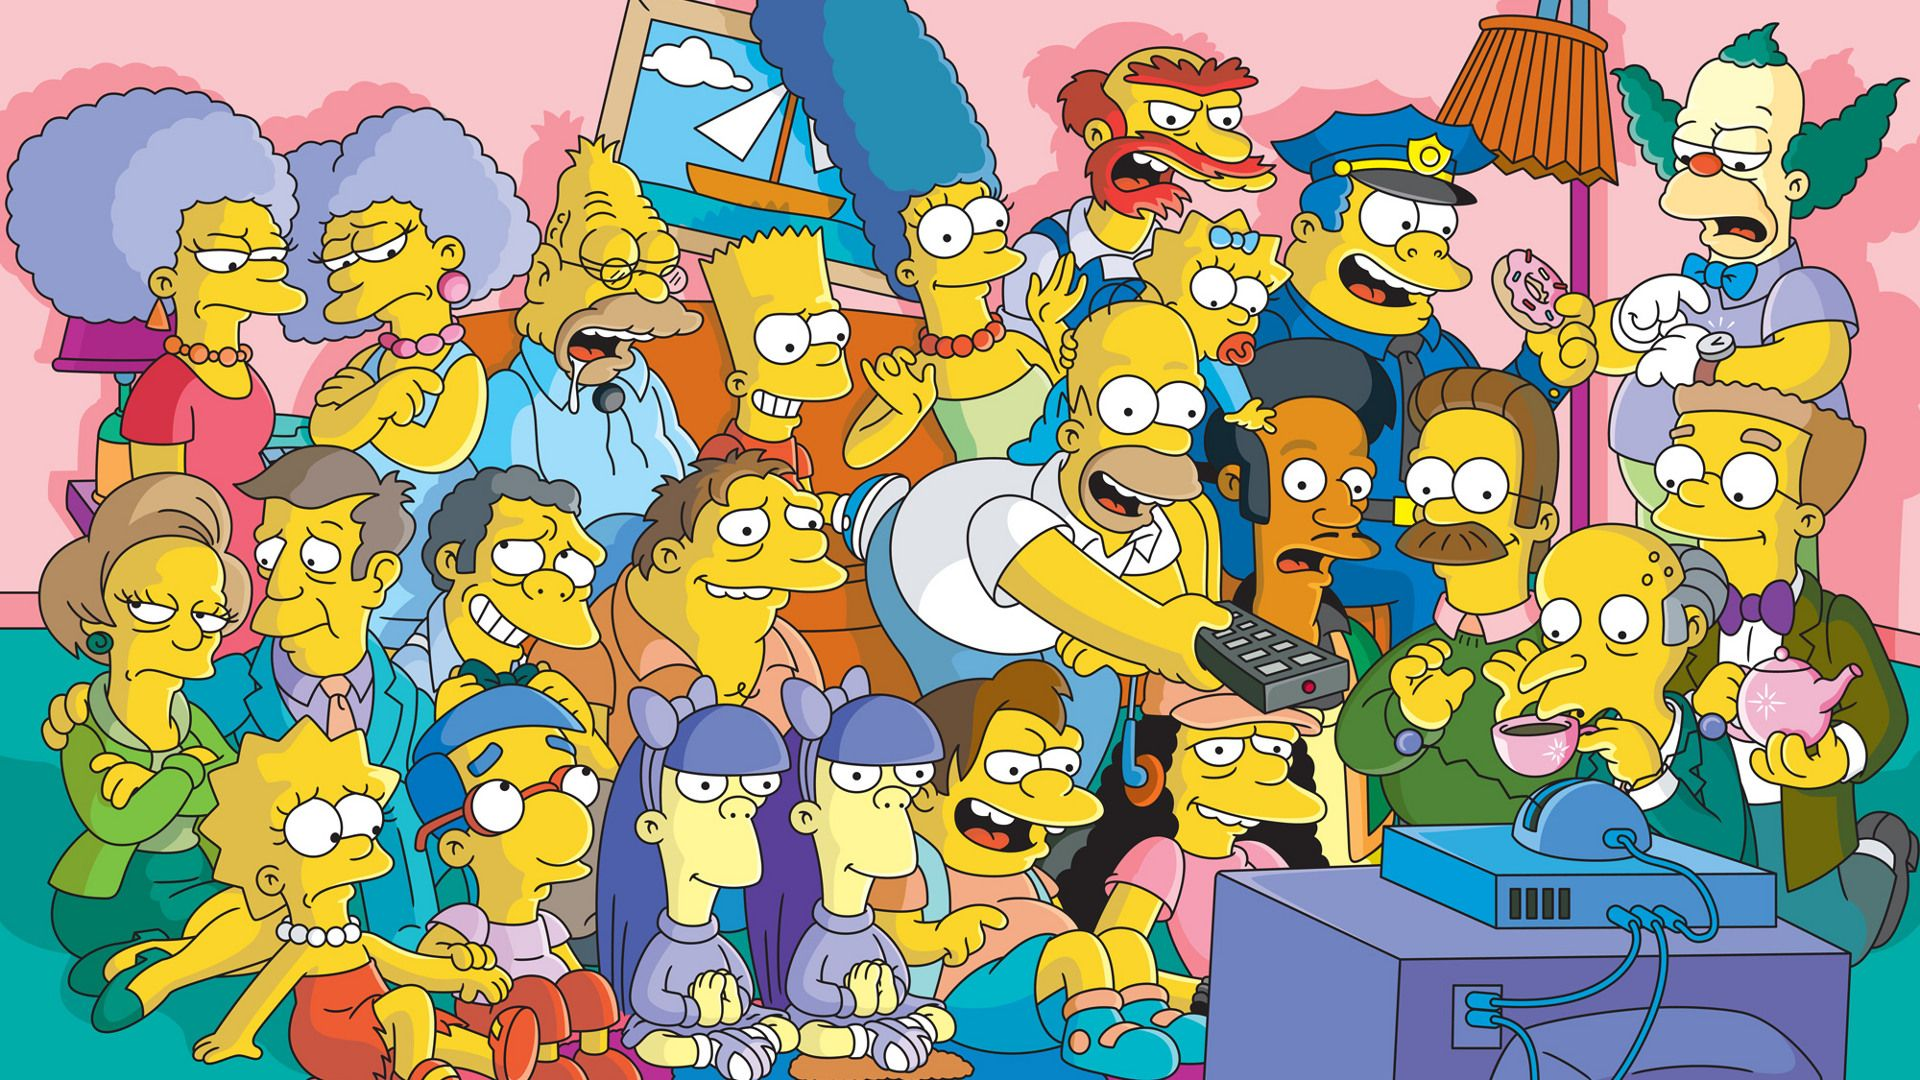 Judd Apatow Wrote Next Week S Episode Of The Simpsons The Simpsons Movie Simpsons Art Simpson Tv